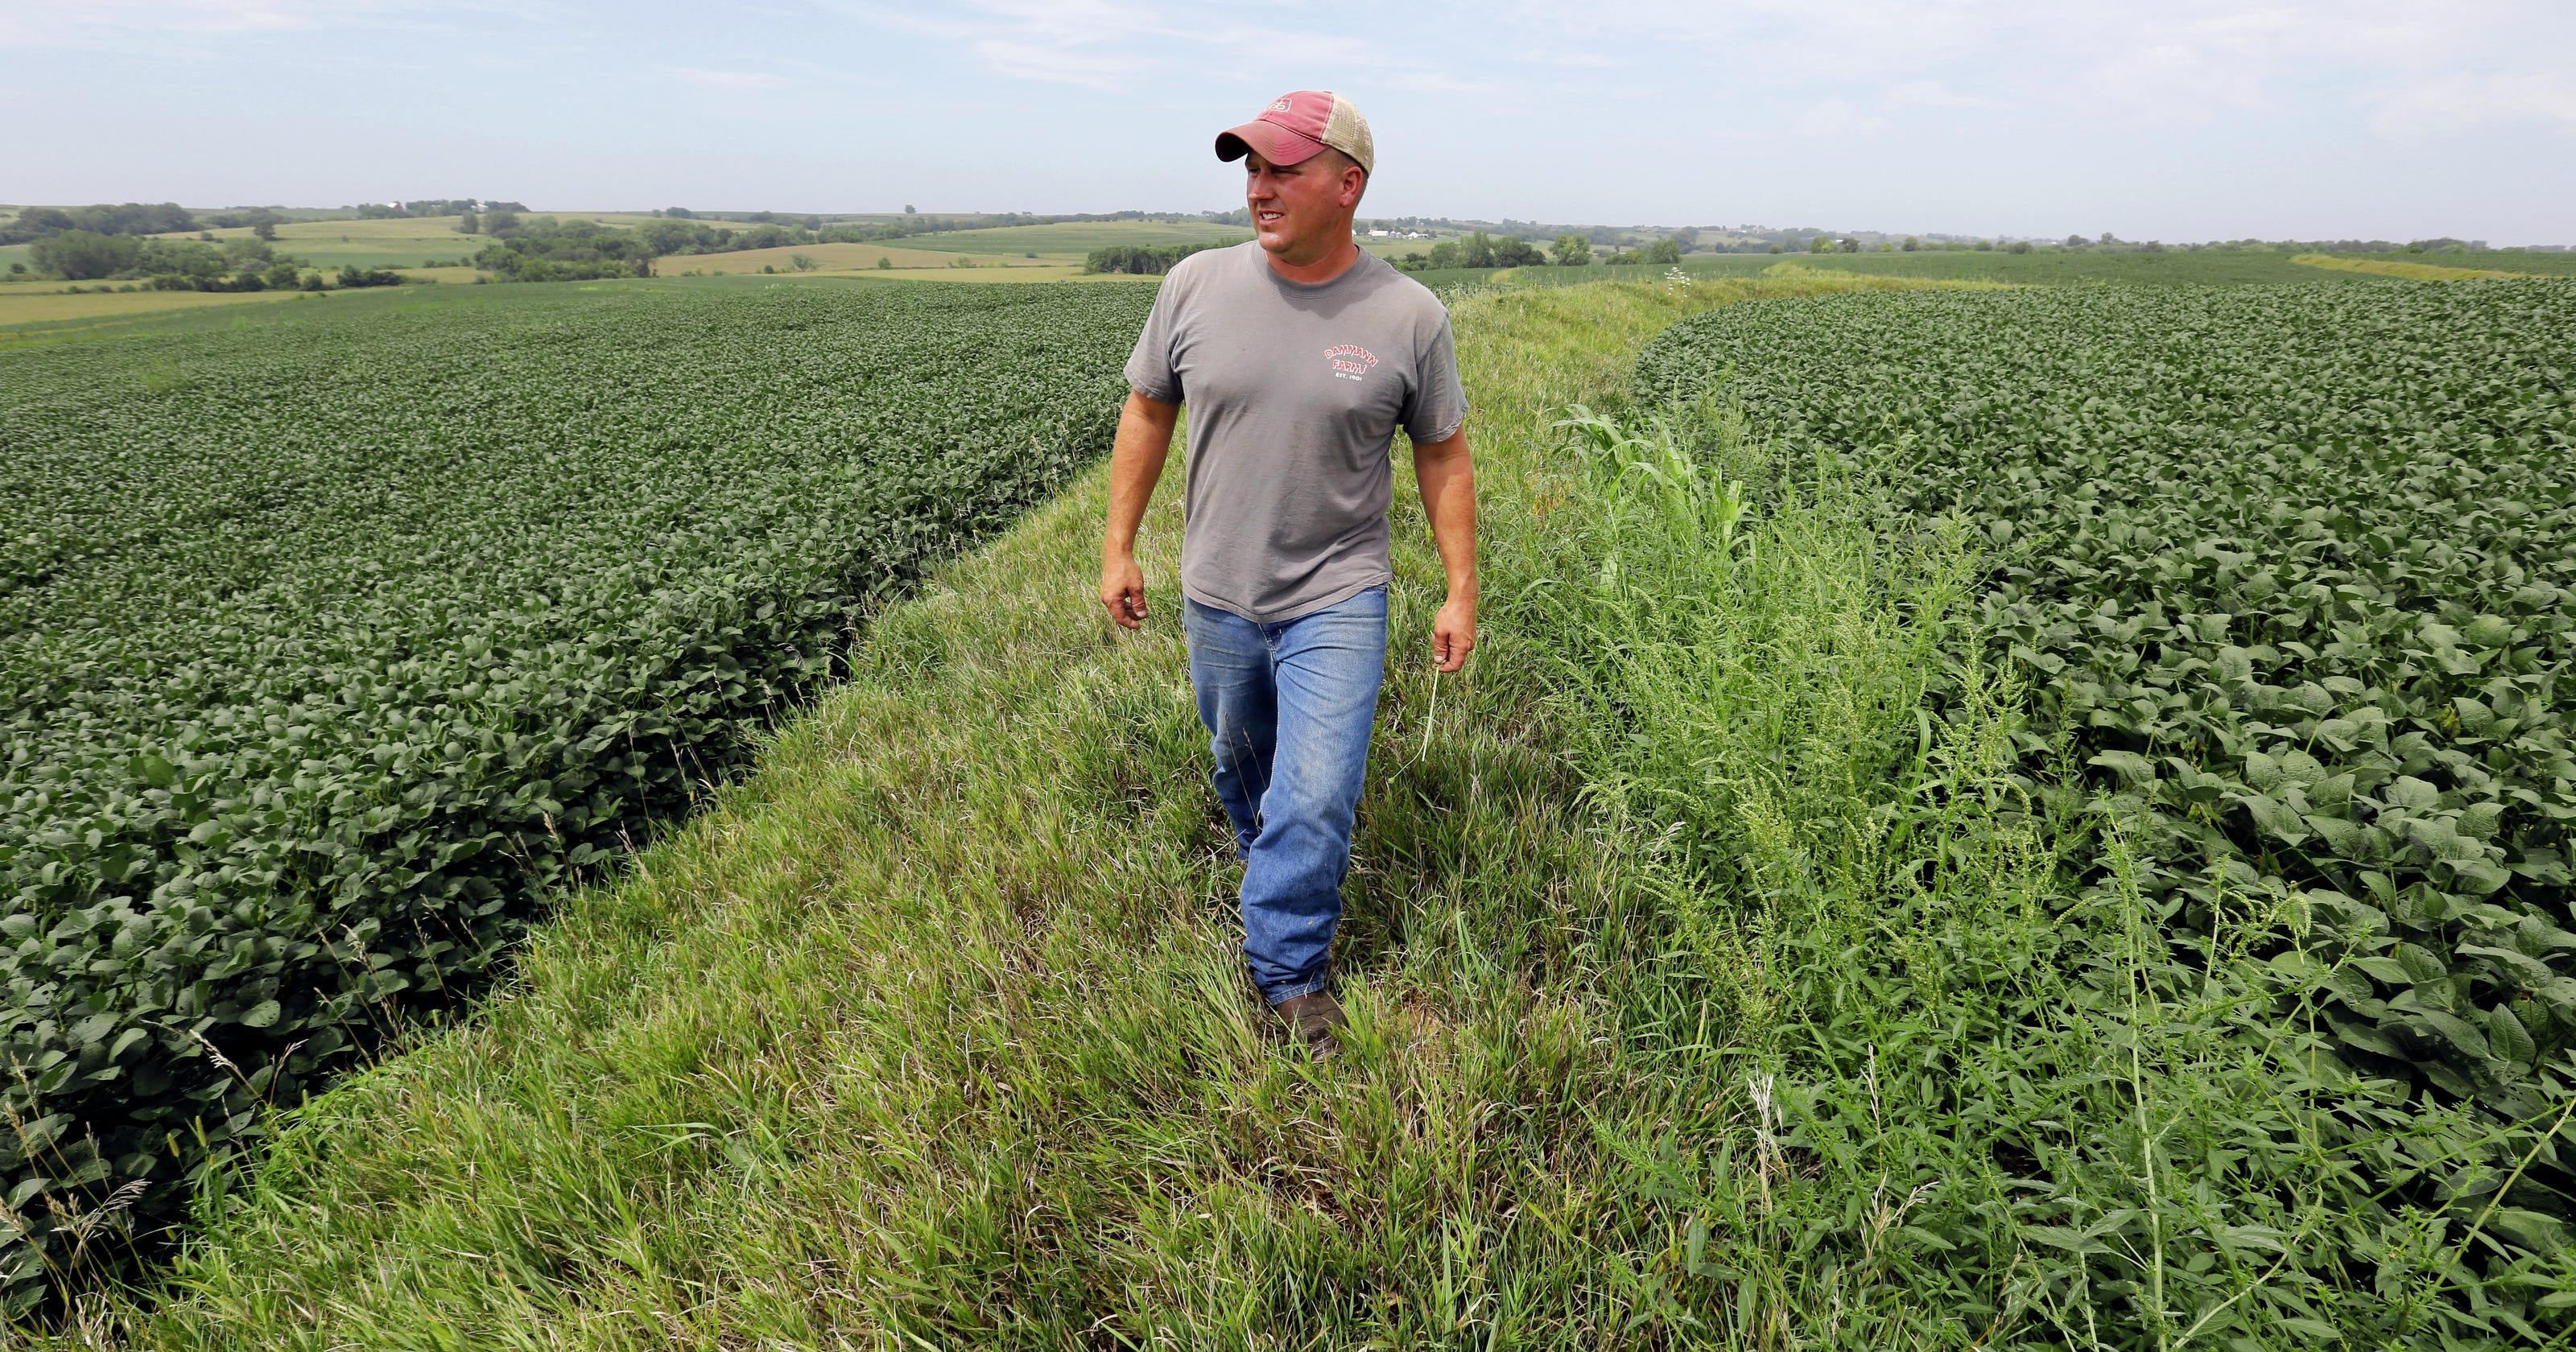 Farmers turn to GMO-free crops to boost income